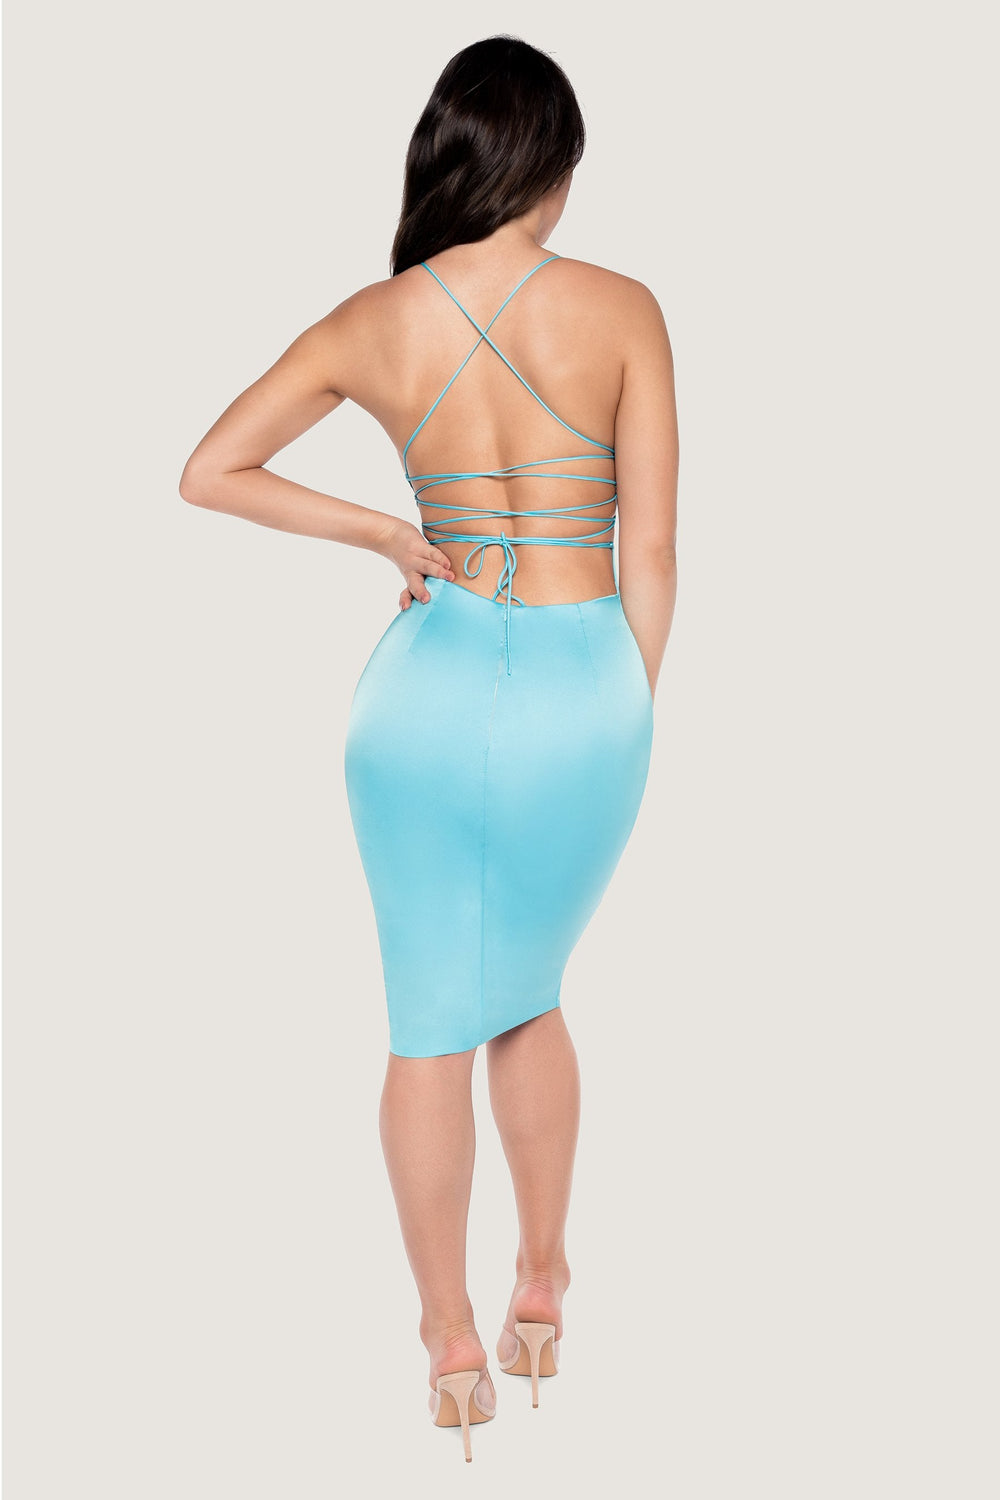 Bebe Thin Strap Lace Up Midi Dress - Baby Blue - MESHKI ?id=14612170670155